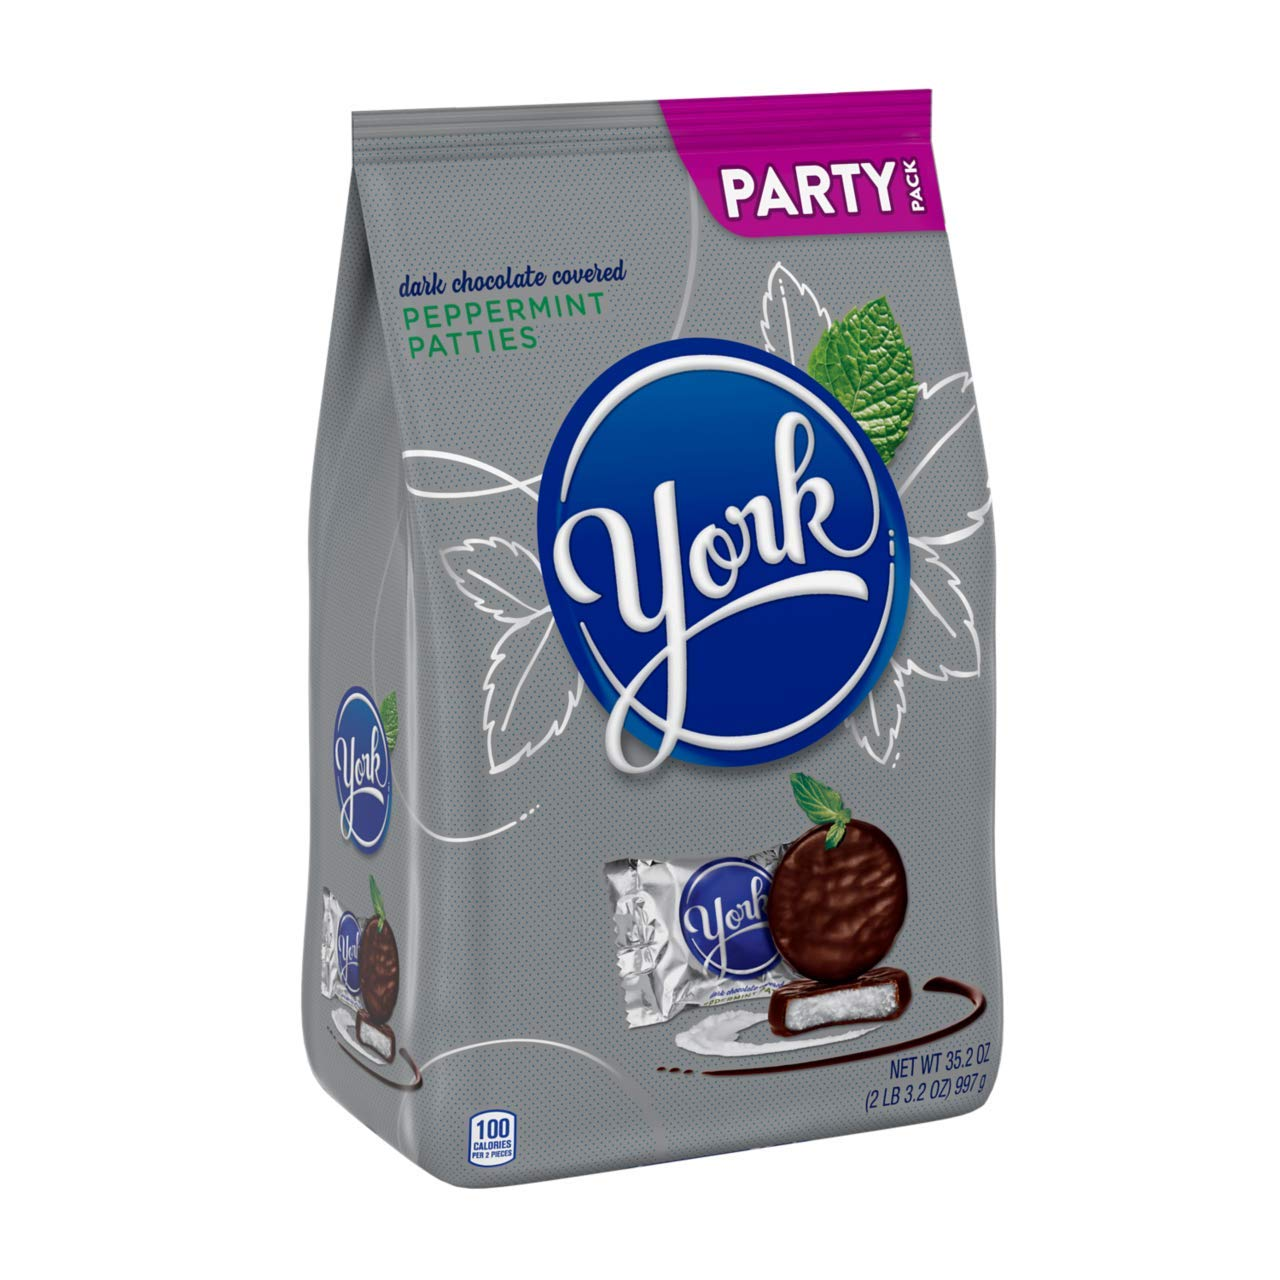 YORK Dark Chocolate Peppermint Patties, Valentines Day, Shareable Stand up party bag, bulk candy, 2 Pounds